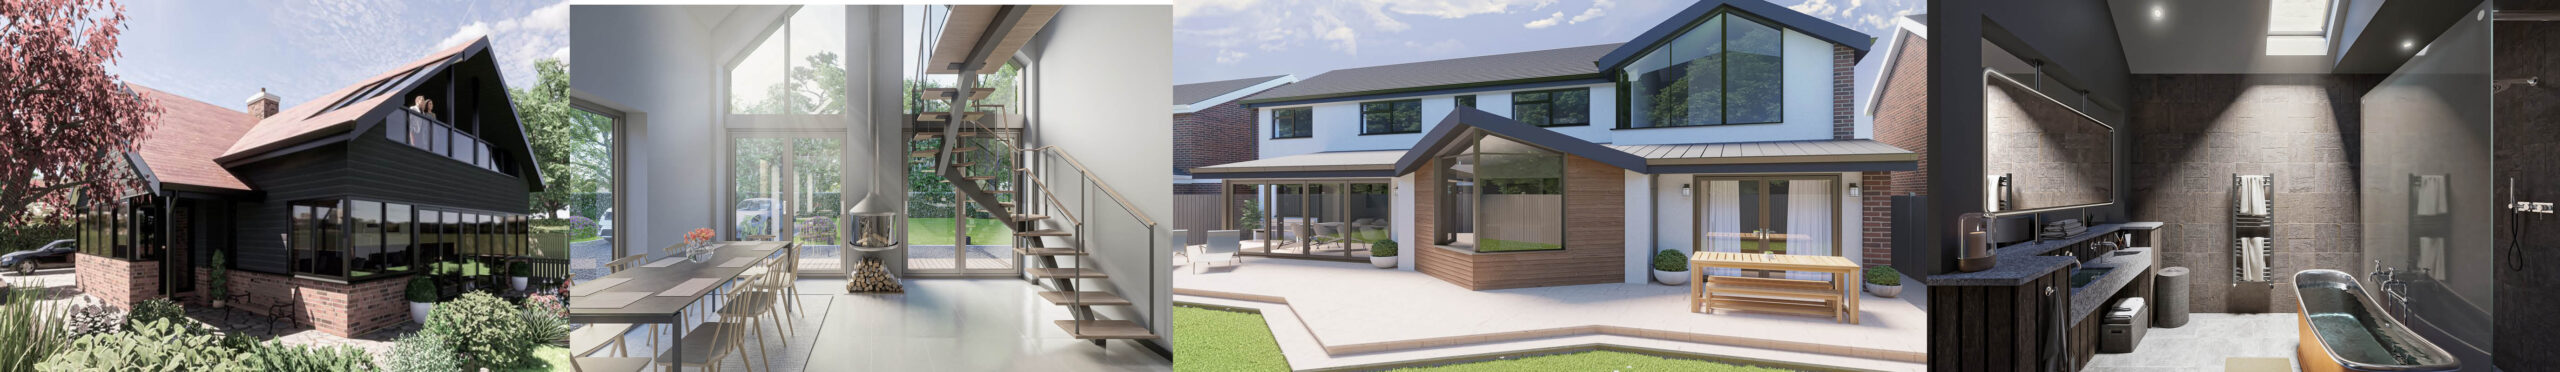 Image shows four of Acre Design's projects in the North East, our designs for home extensions are pictured